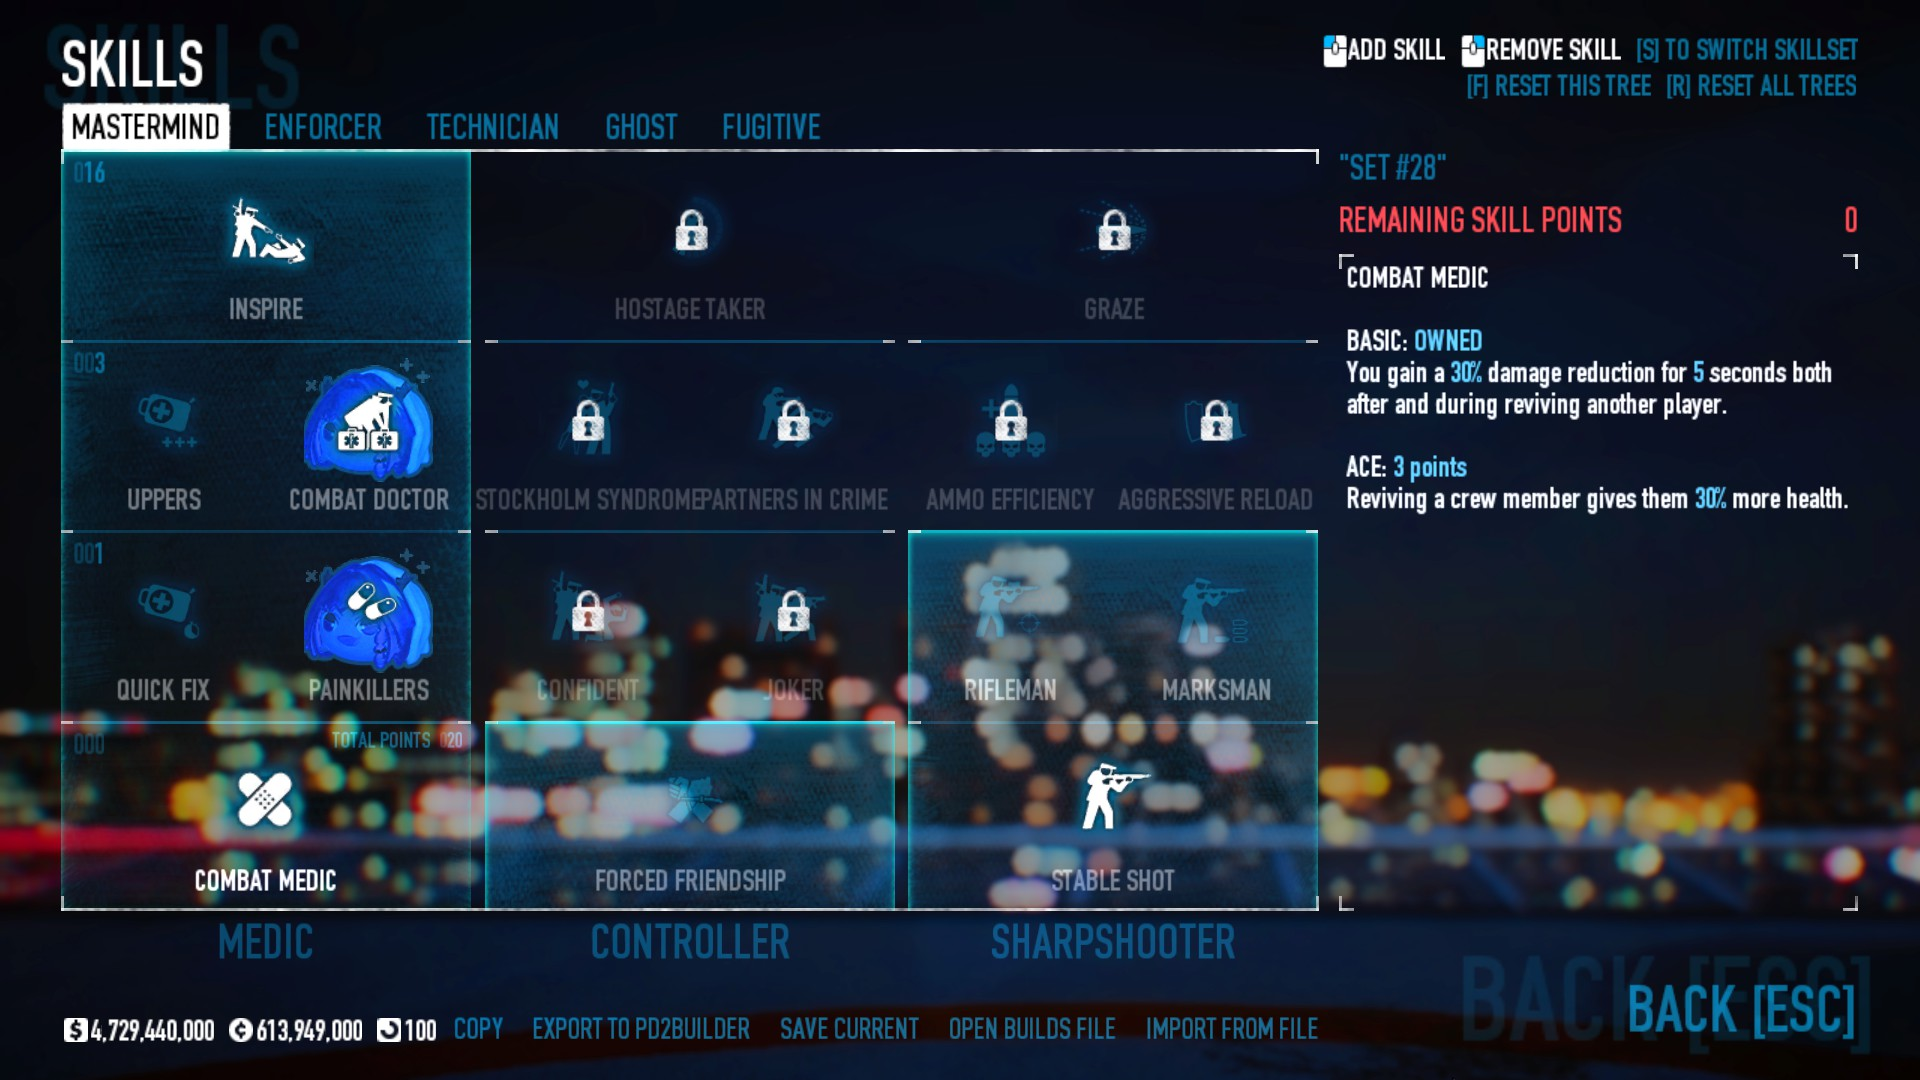 PAYDAY 2 - DSOD No DLC Build + Weapons Attachments & Class - Mastermind Skills - F0DDD14